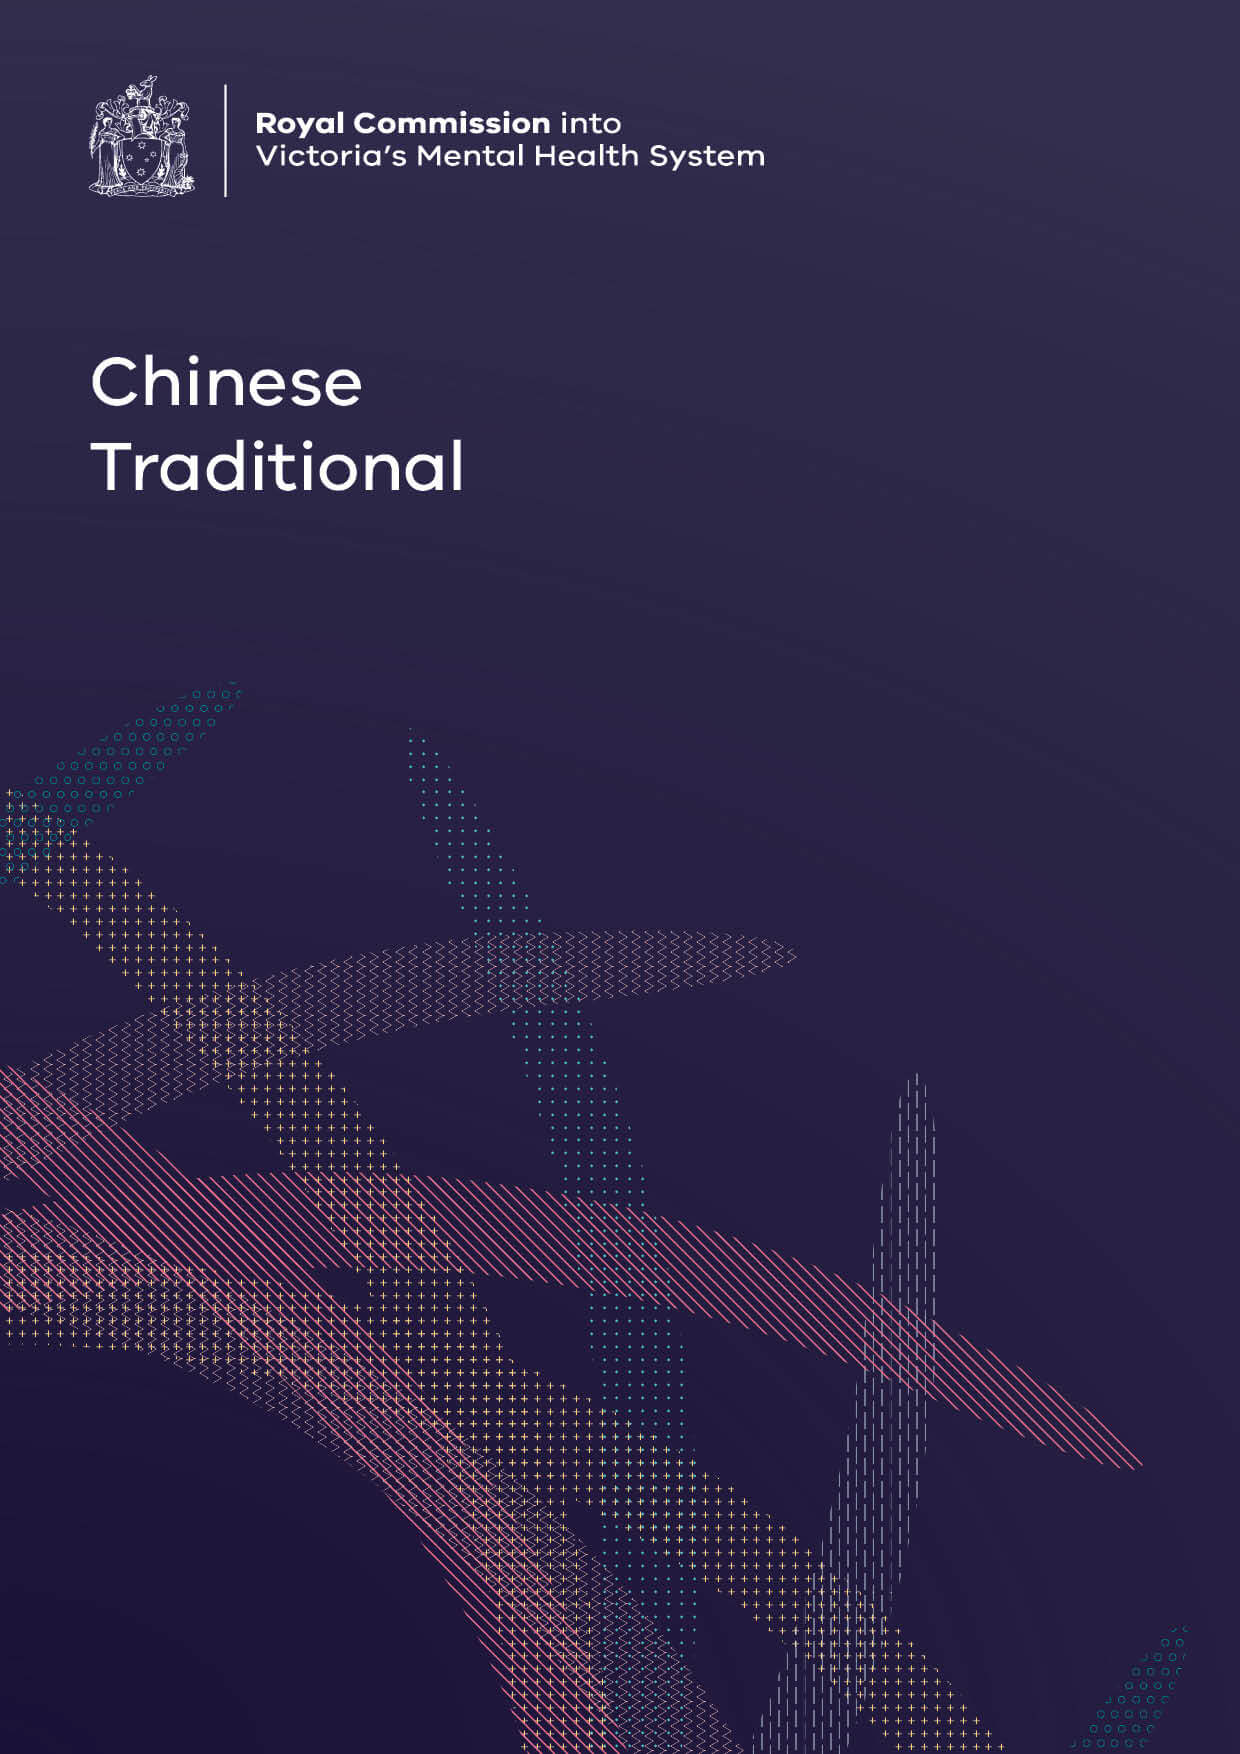 RCVMHS_FinalReport_Covers_Chinese-Traditional